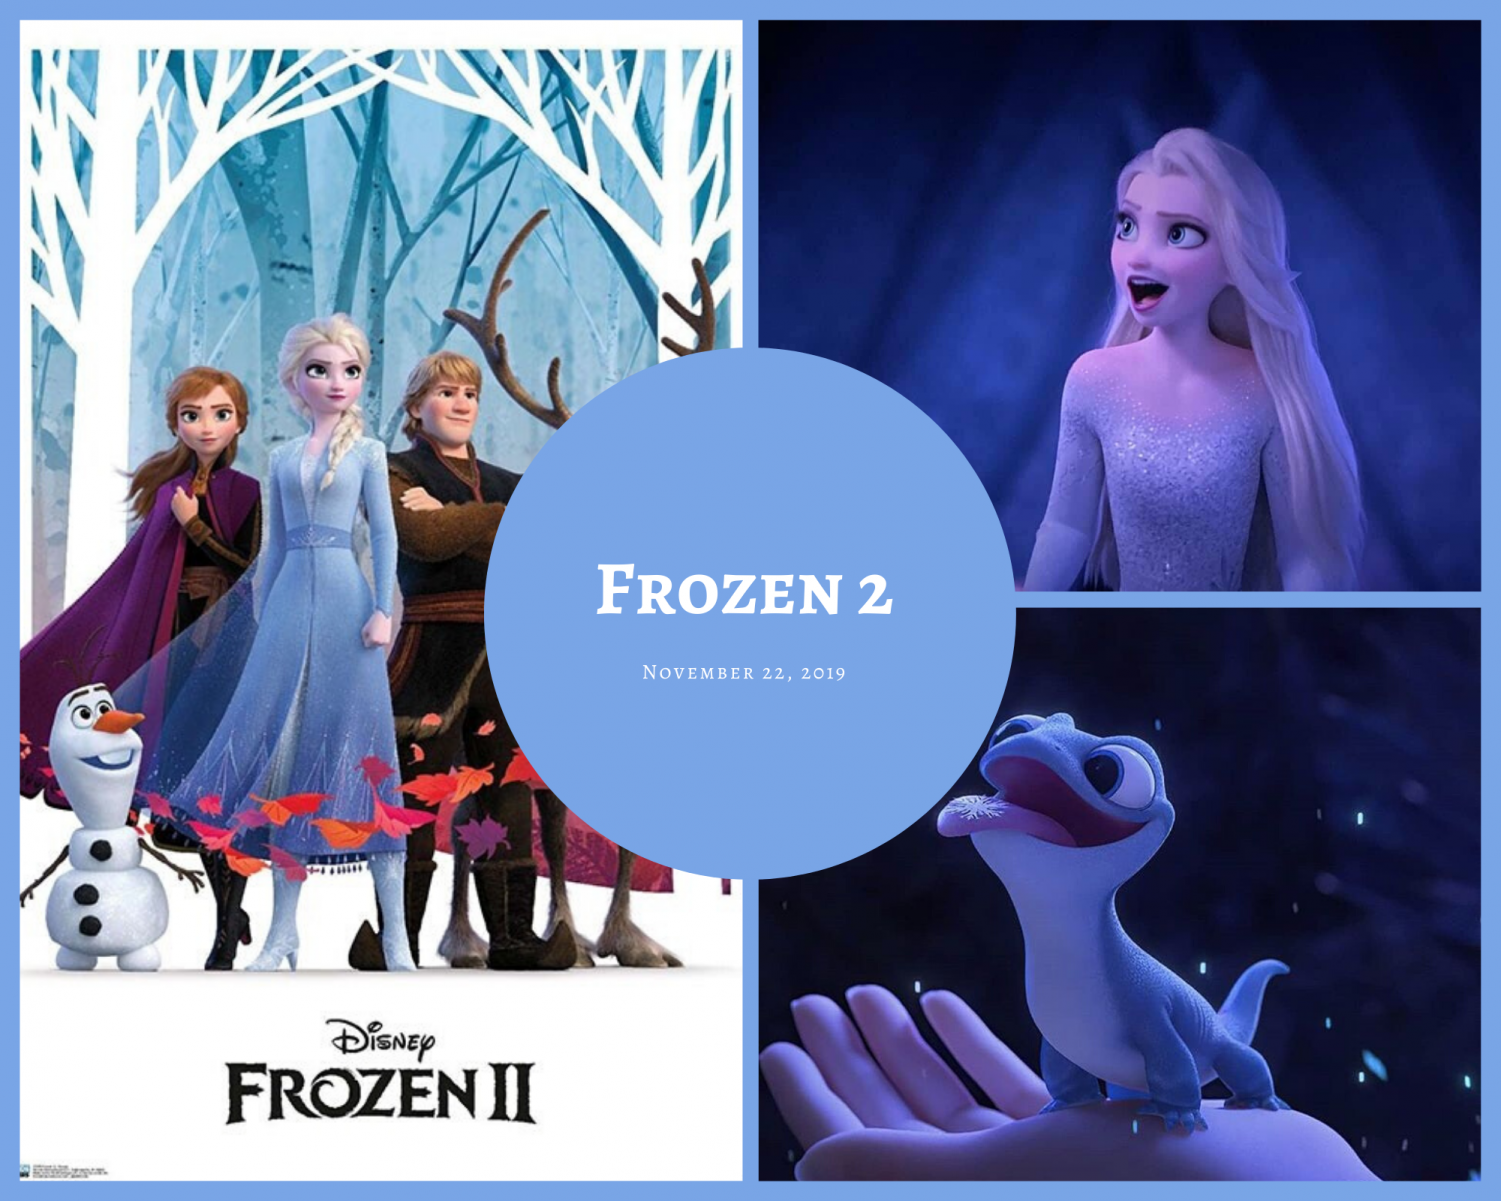 Poster and scenes with previous and new characters in